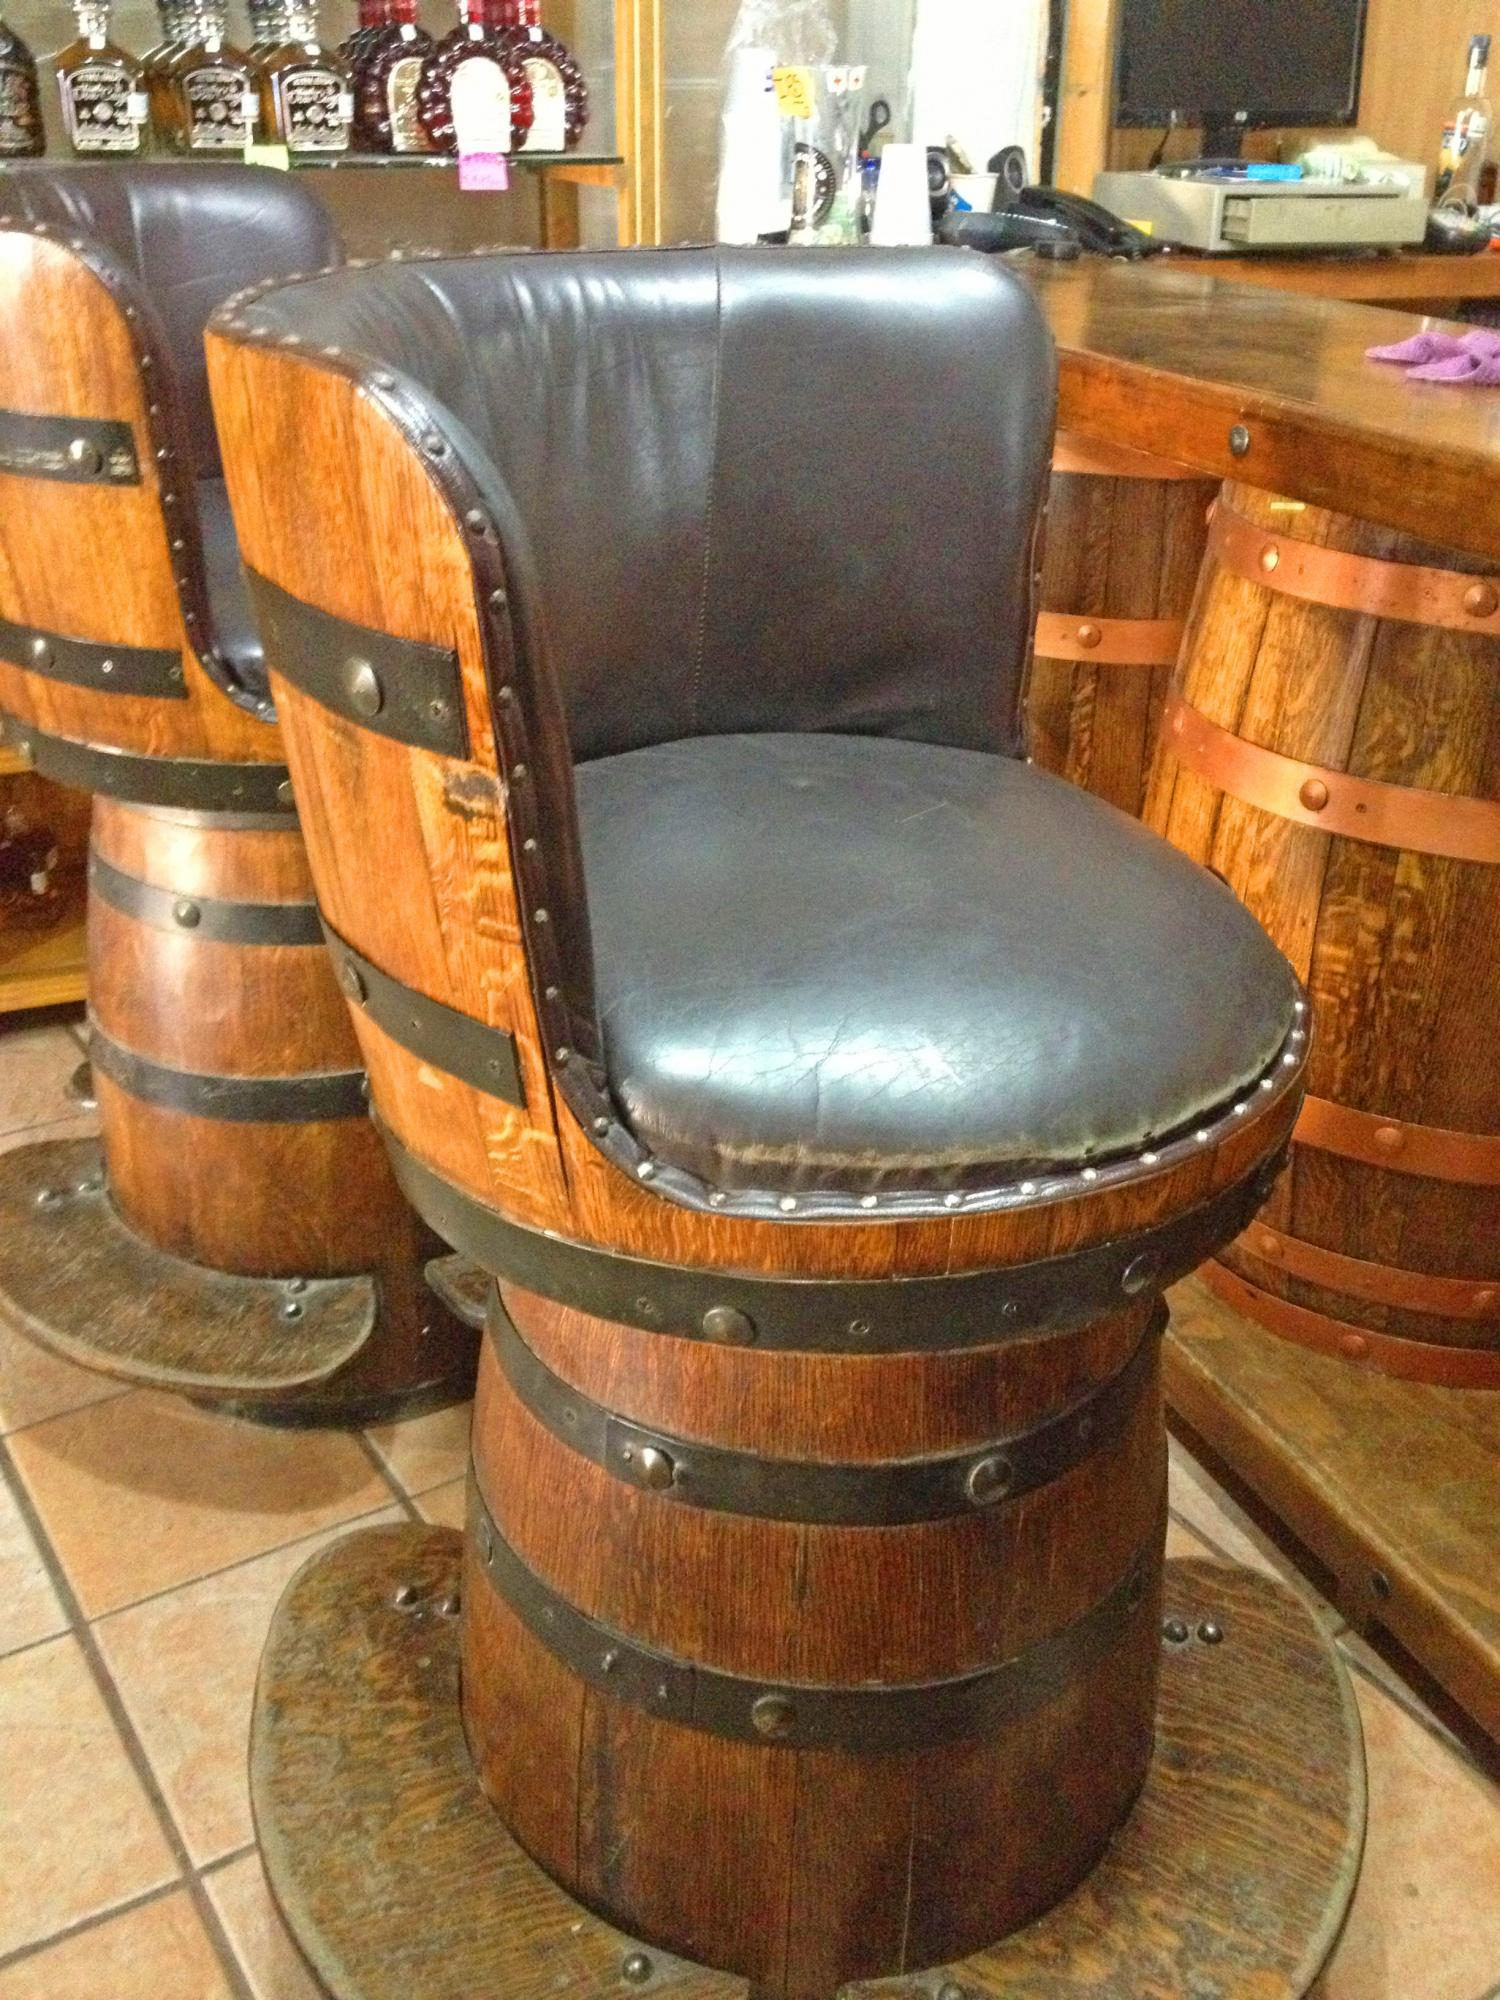 Tequila Barrel Bar Stools - Whiskey/Wine Barrel Bar Stools With Barrel seat back